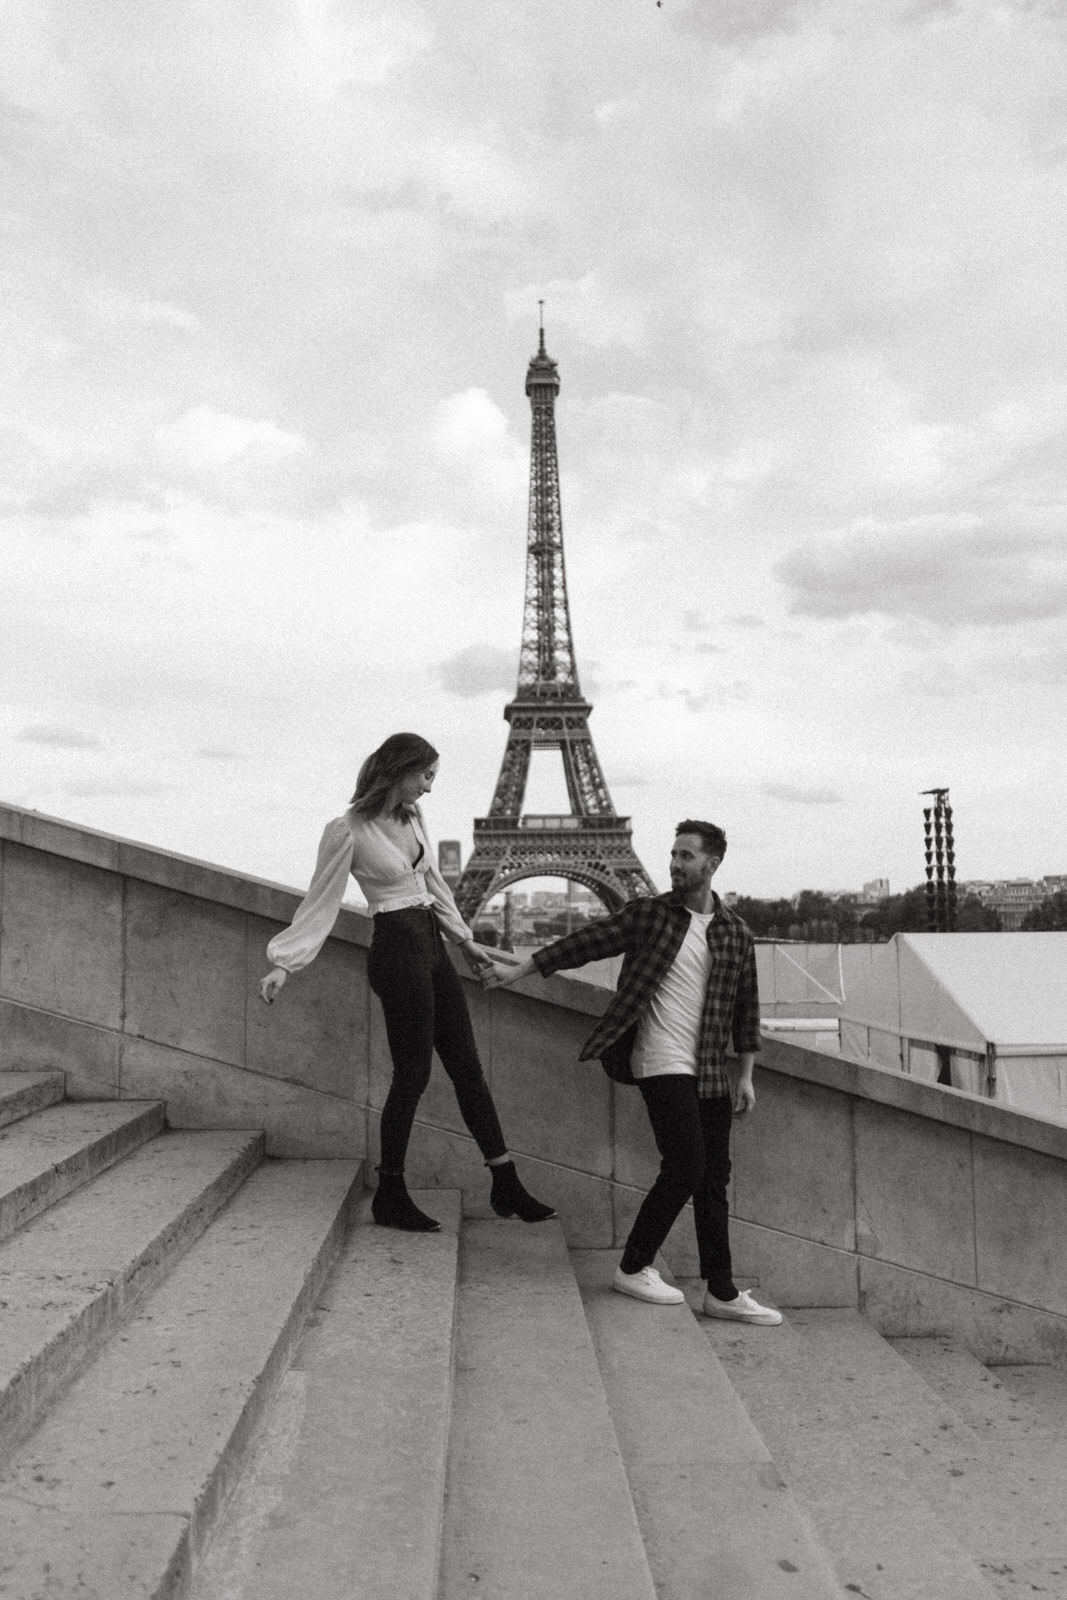 Missing Paris – Missing Lovers by Joanna Eliza Photography